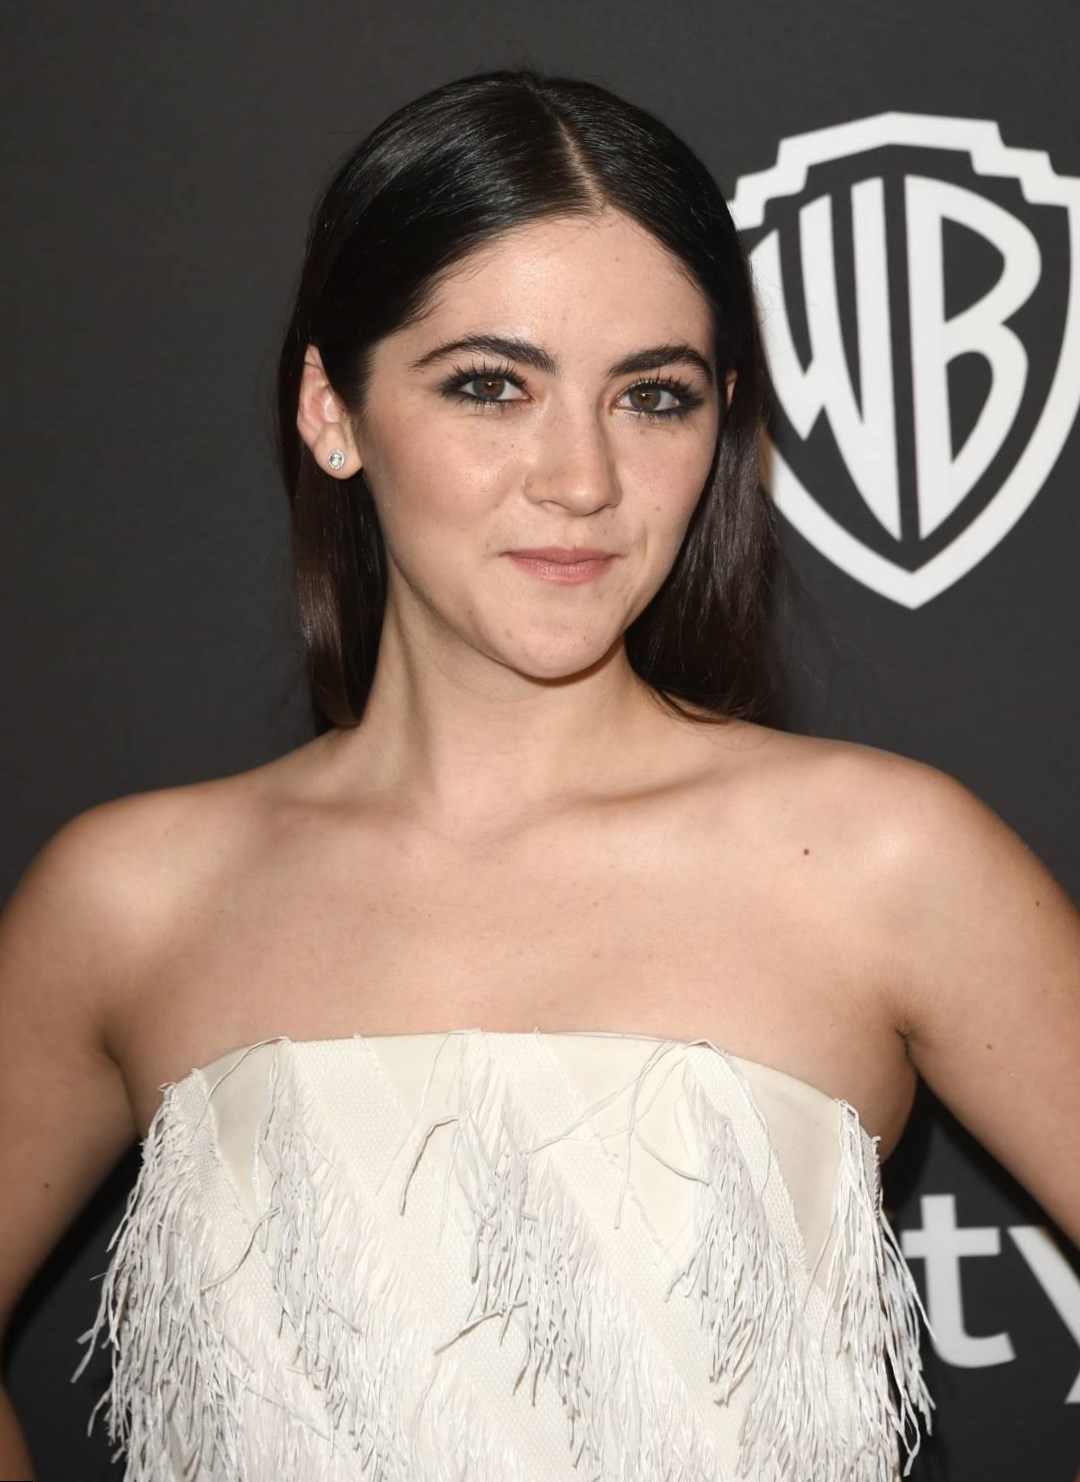 Isabelle Fuhrman - Best Movies & TV shows